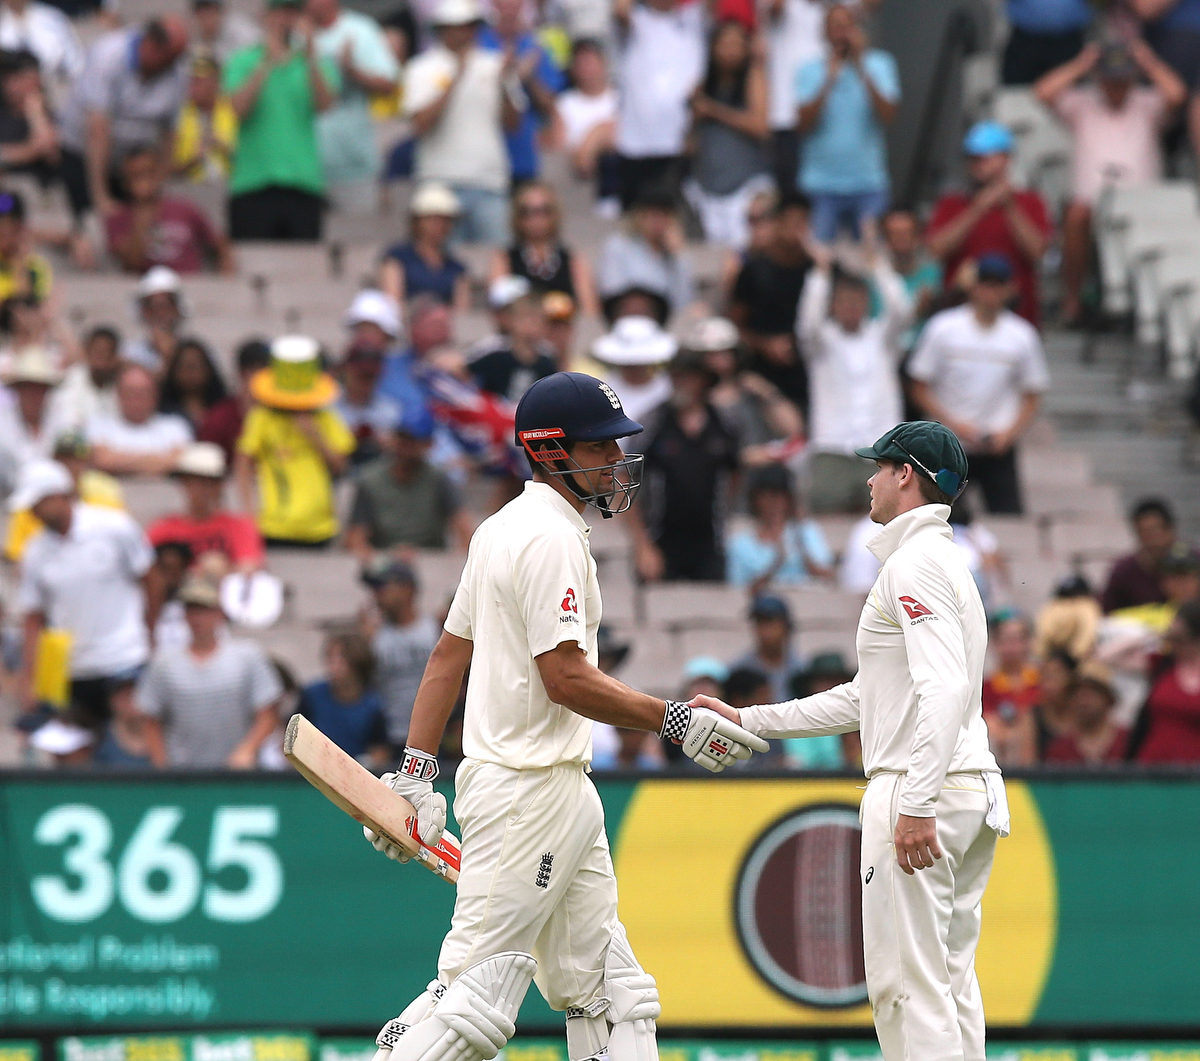 Alastair Cook covers for the batsmen who walked without